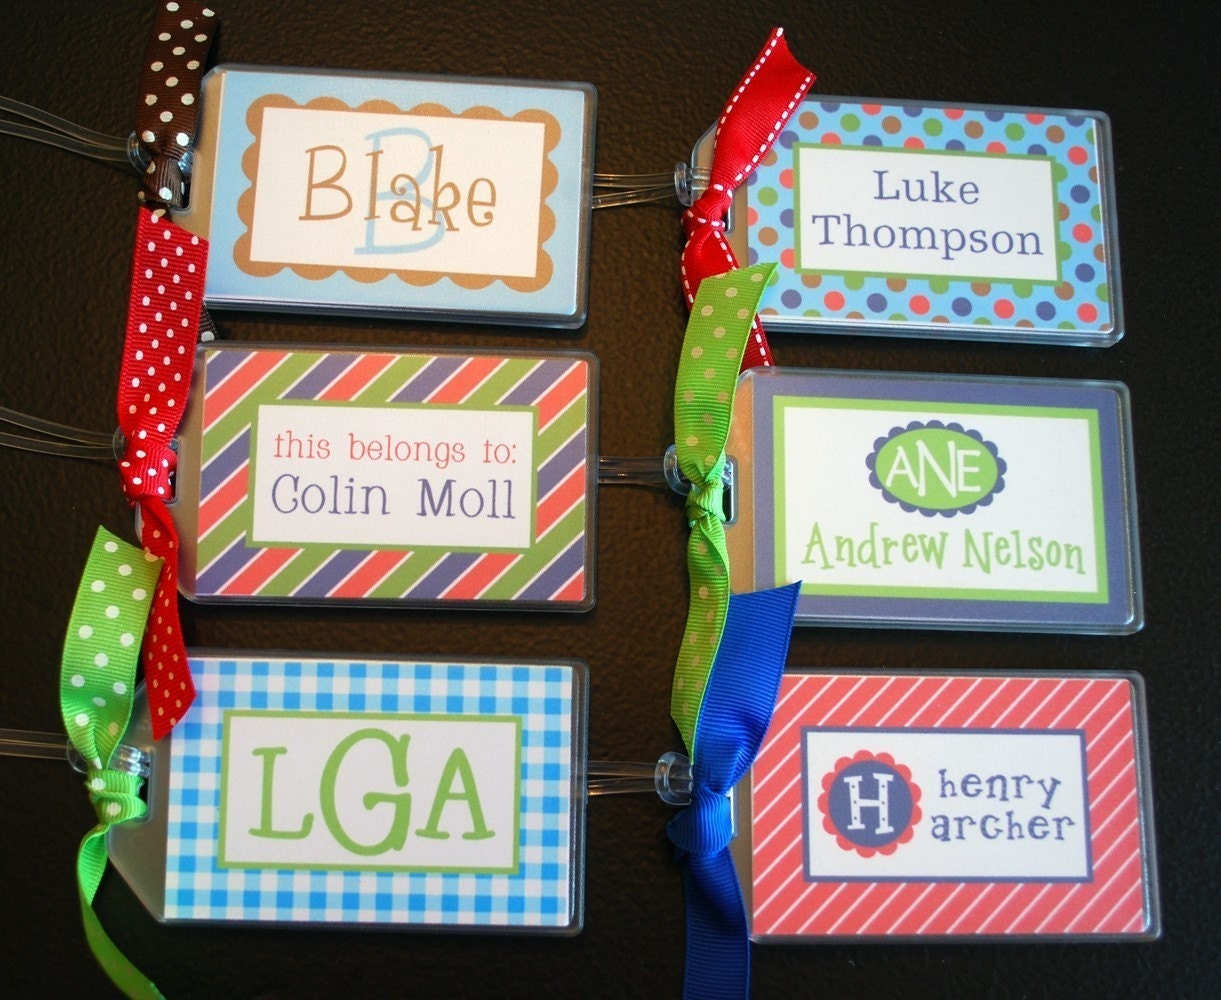 Boy Personalized Name / Monogram Bag Tag - Luggage, Backpack, Book Bag, Diaper Bag, etc - Design your own